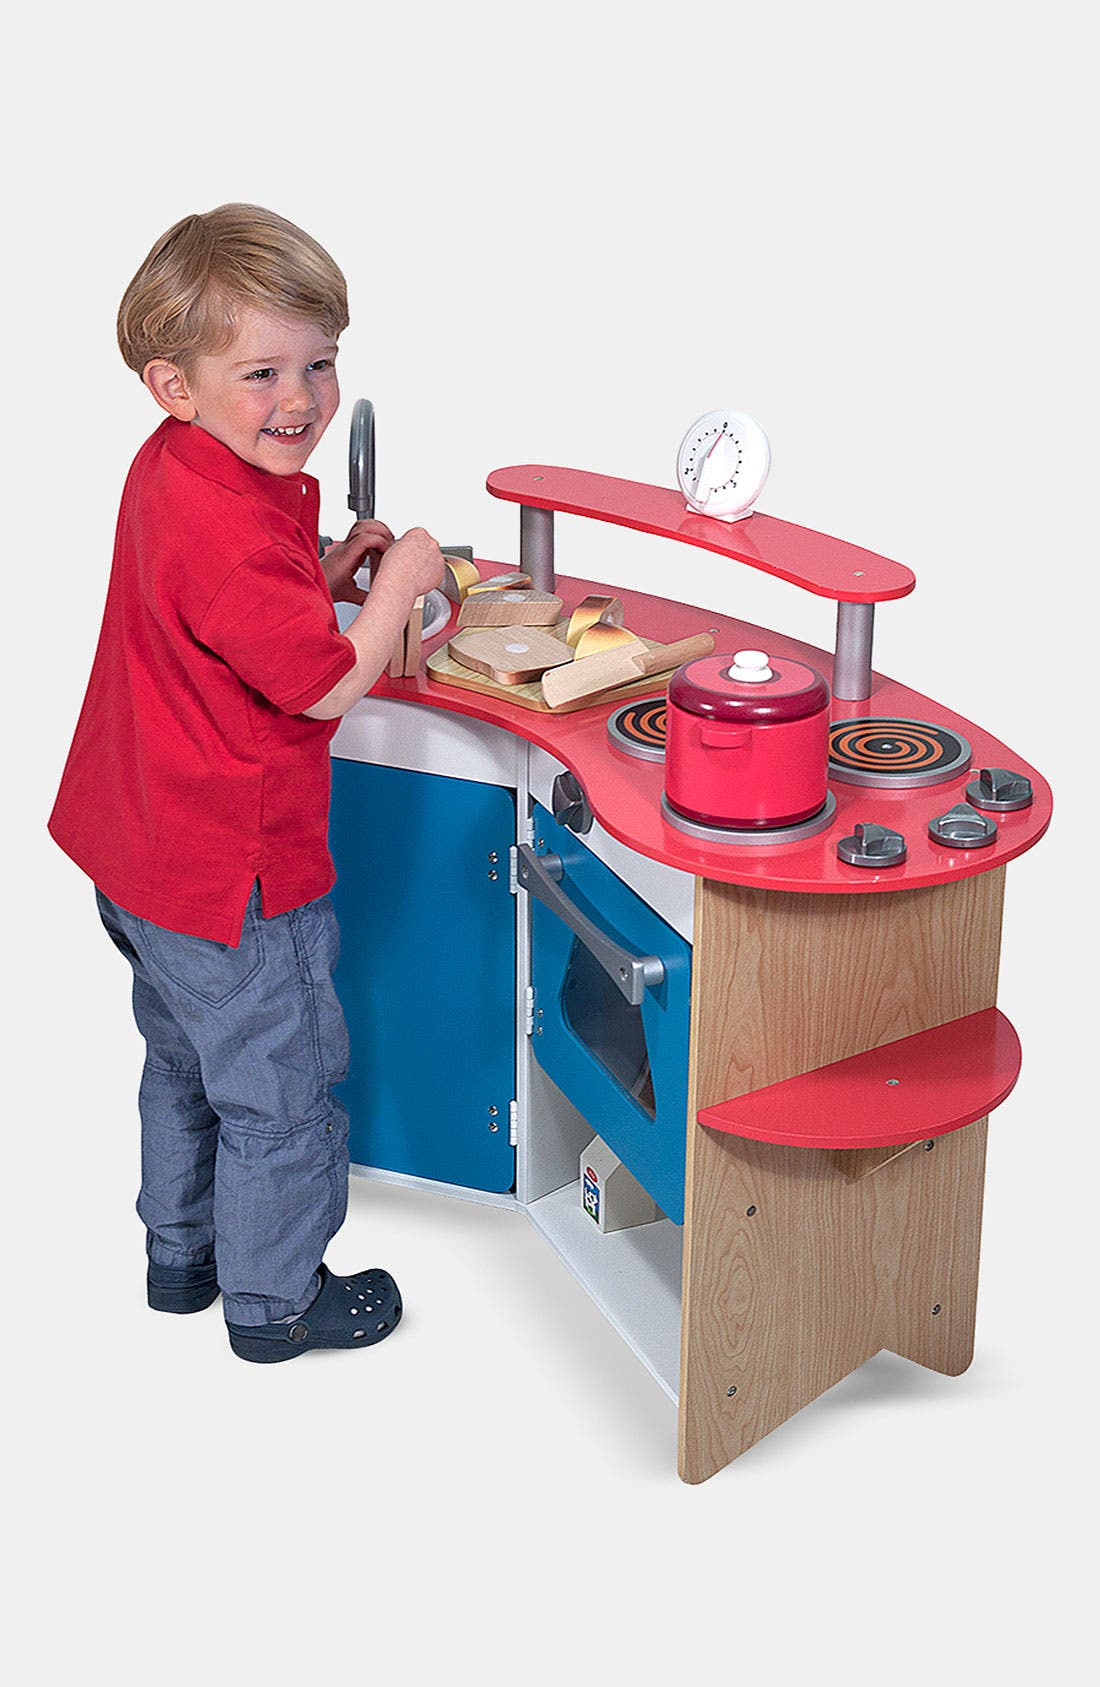 Alternate Image 1 Selected - Melissa & Doug 'Cook's Corner' Wooden Play Kitchen